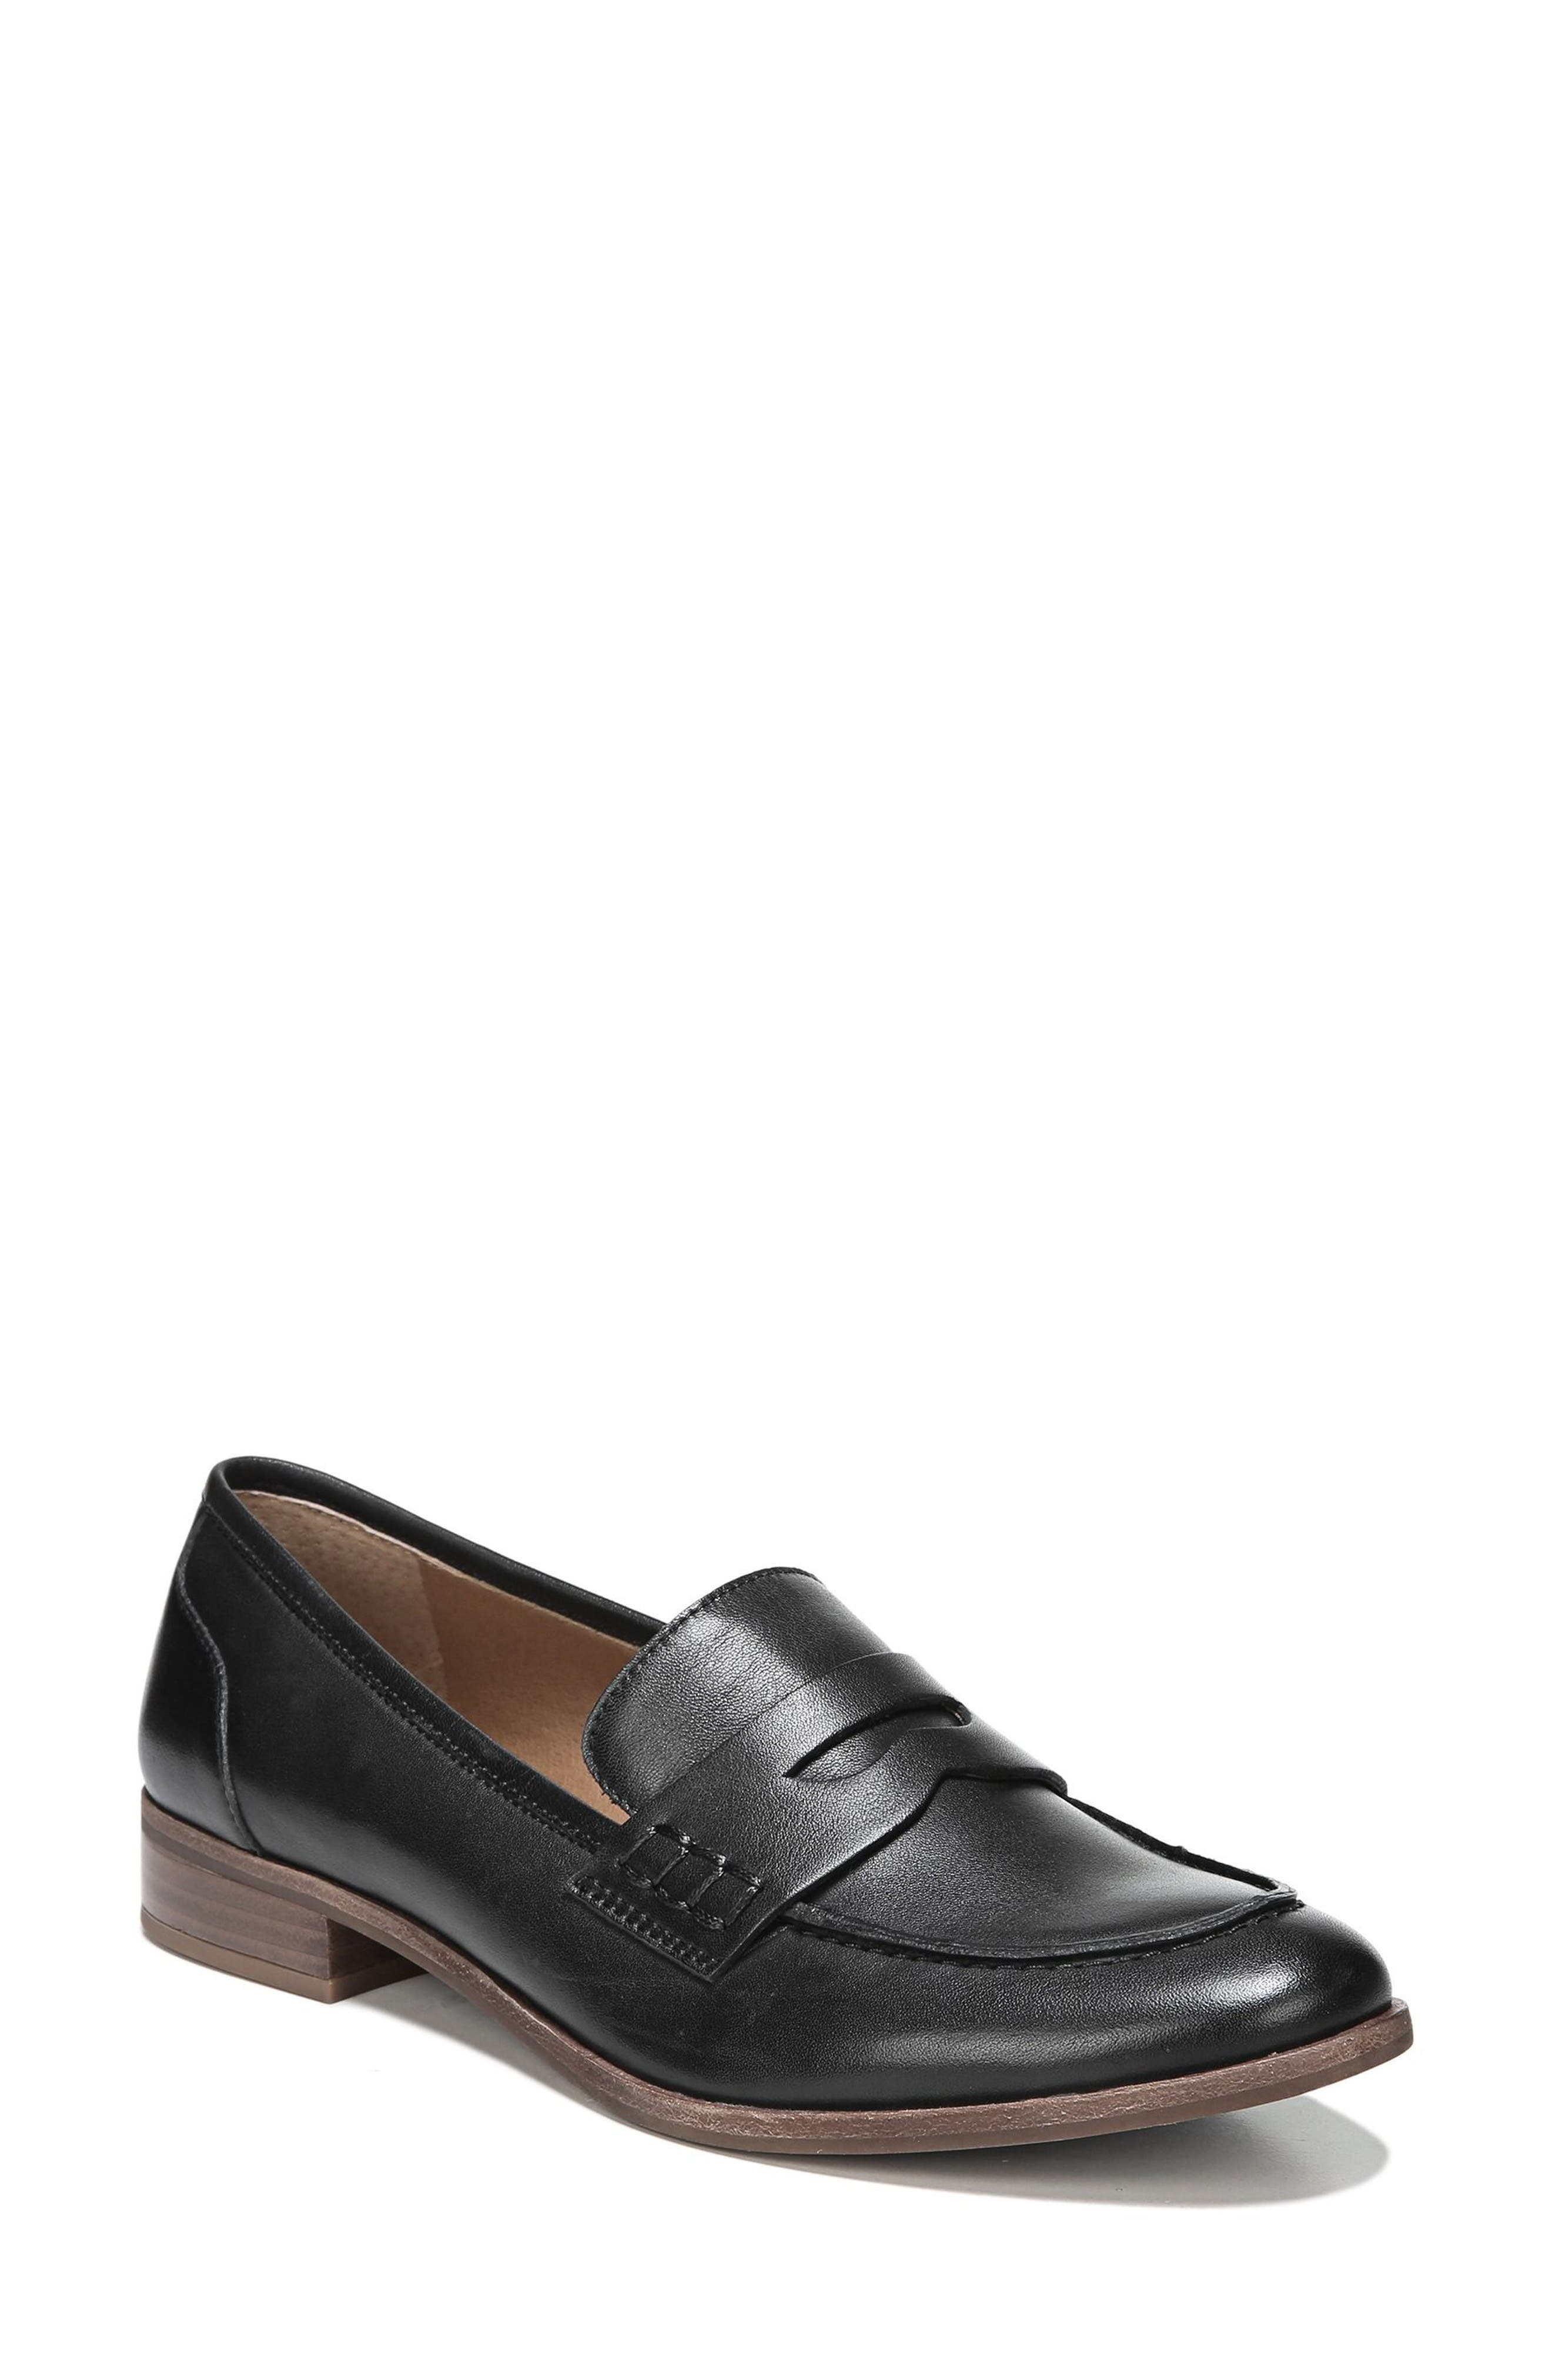 SARTO BY FRANCO SARTO, 'Jolette' Penny Loafer, Main thumbnail 1, color, BLACK LEATHER